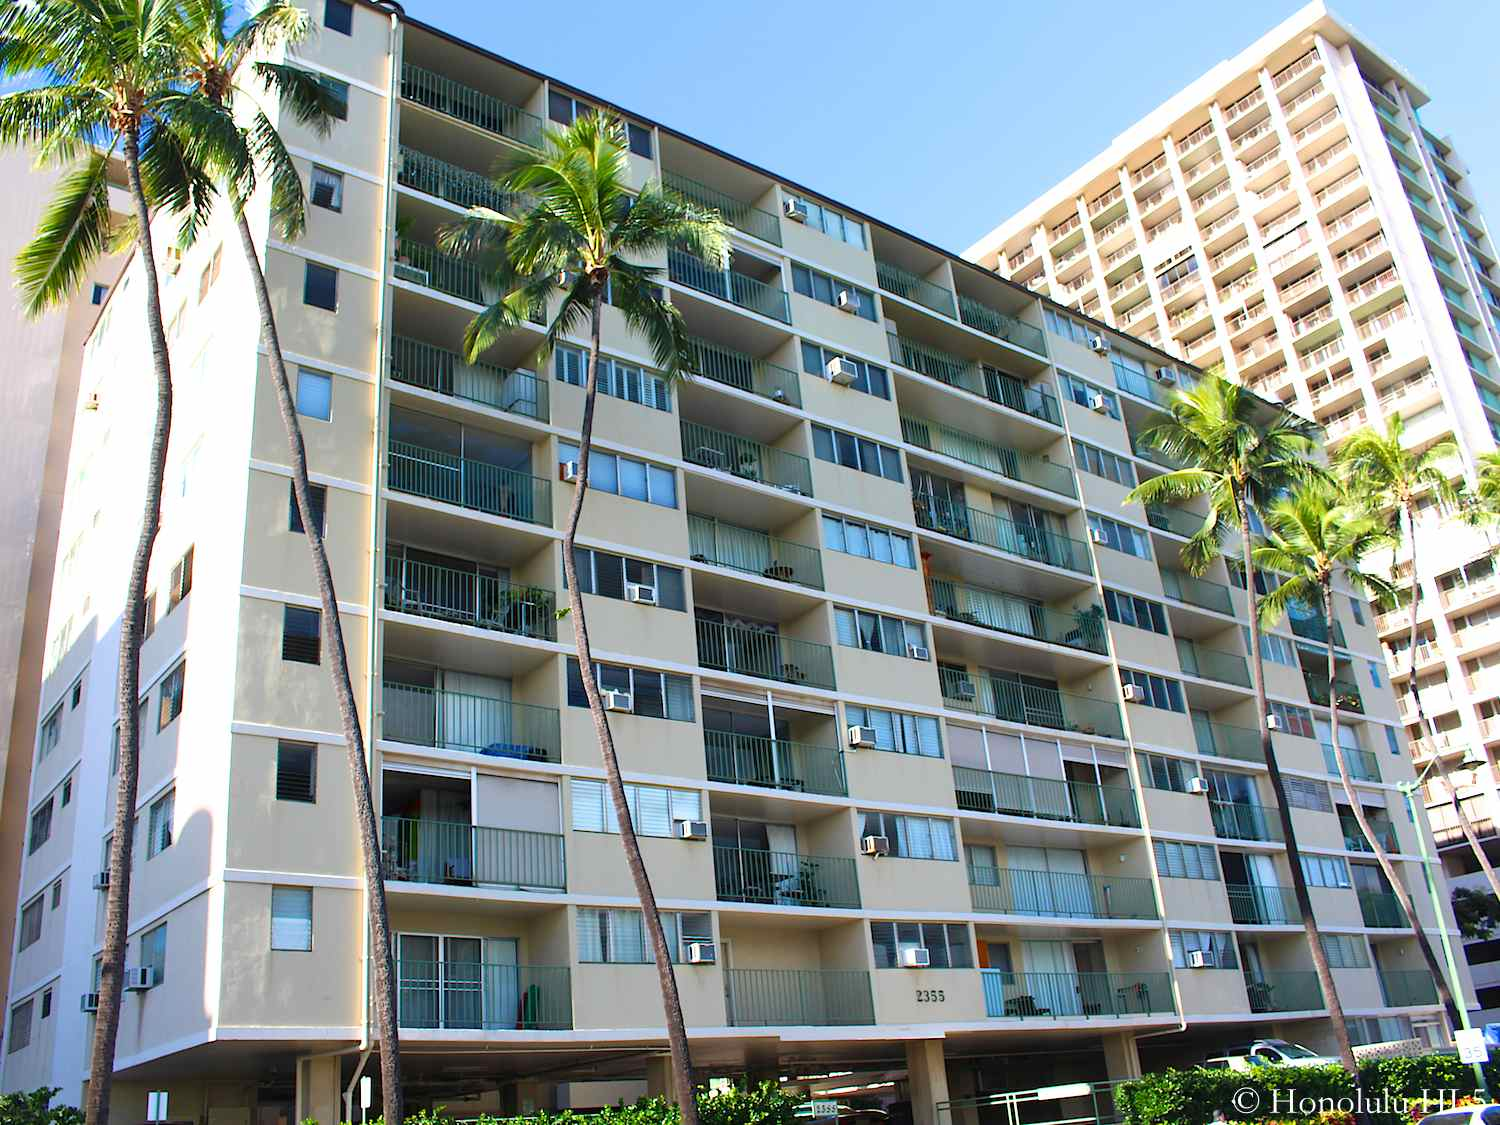 Ala Wai Palms Condos in Waikiki. 10 Story Wide Older Building with Balconies. Off White Color.